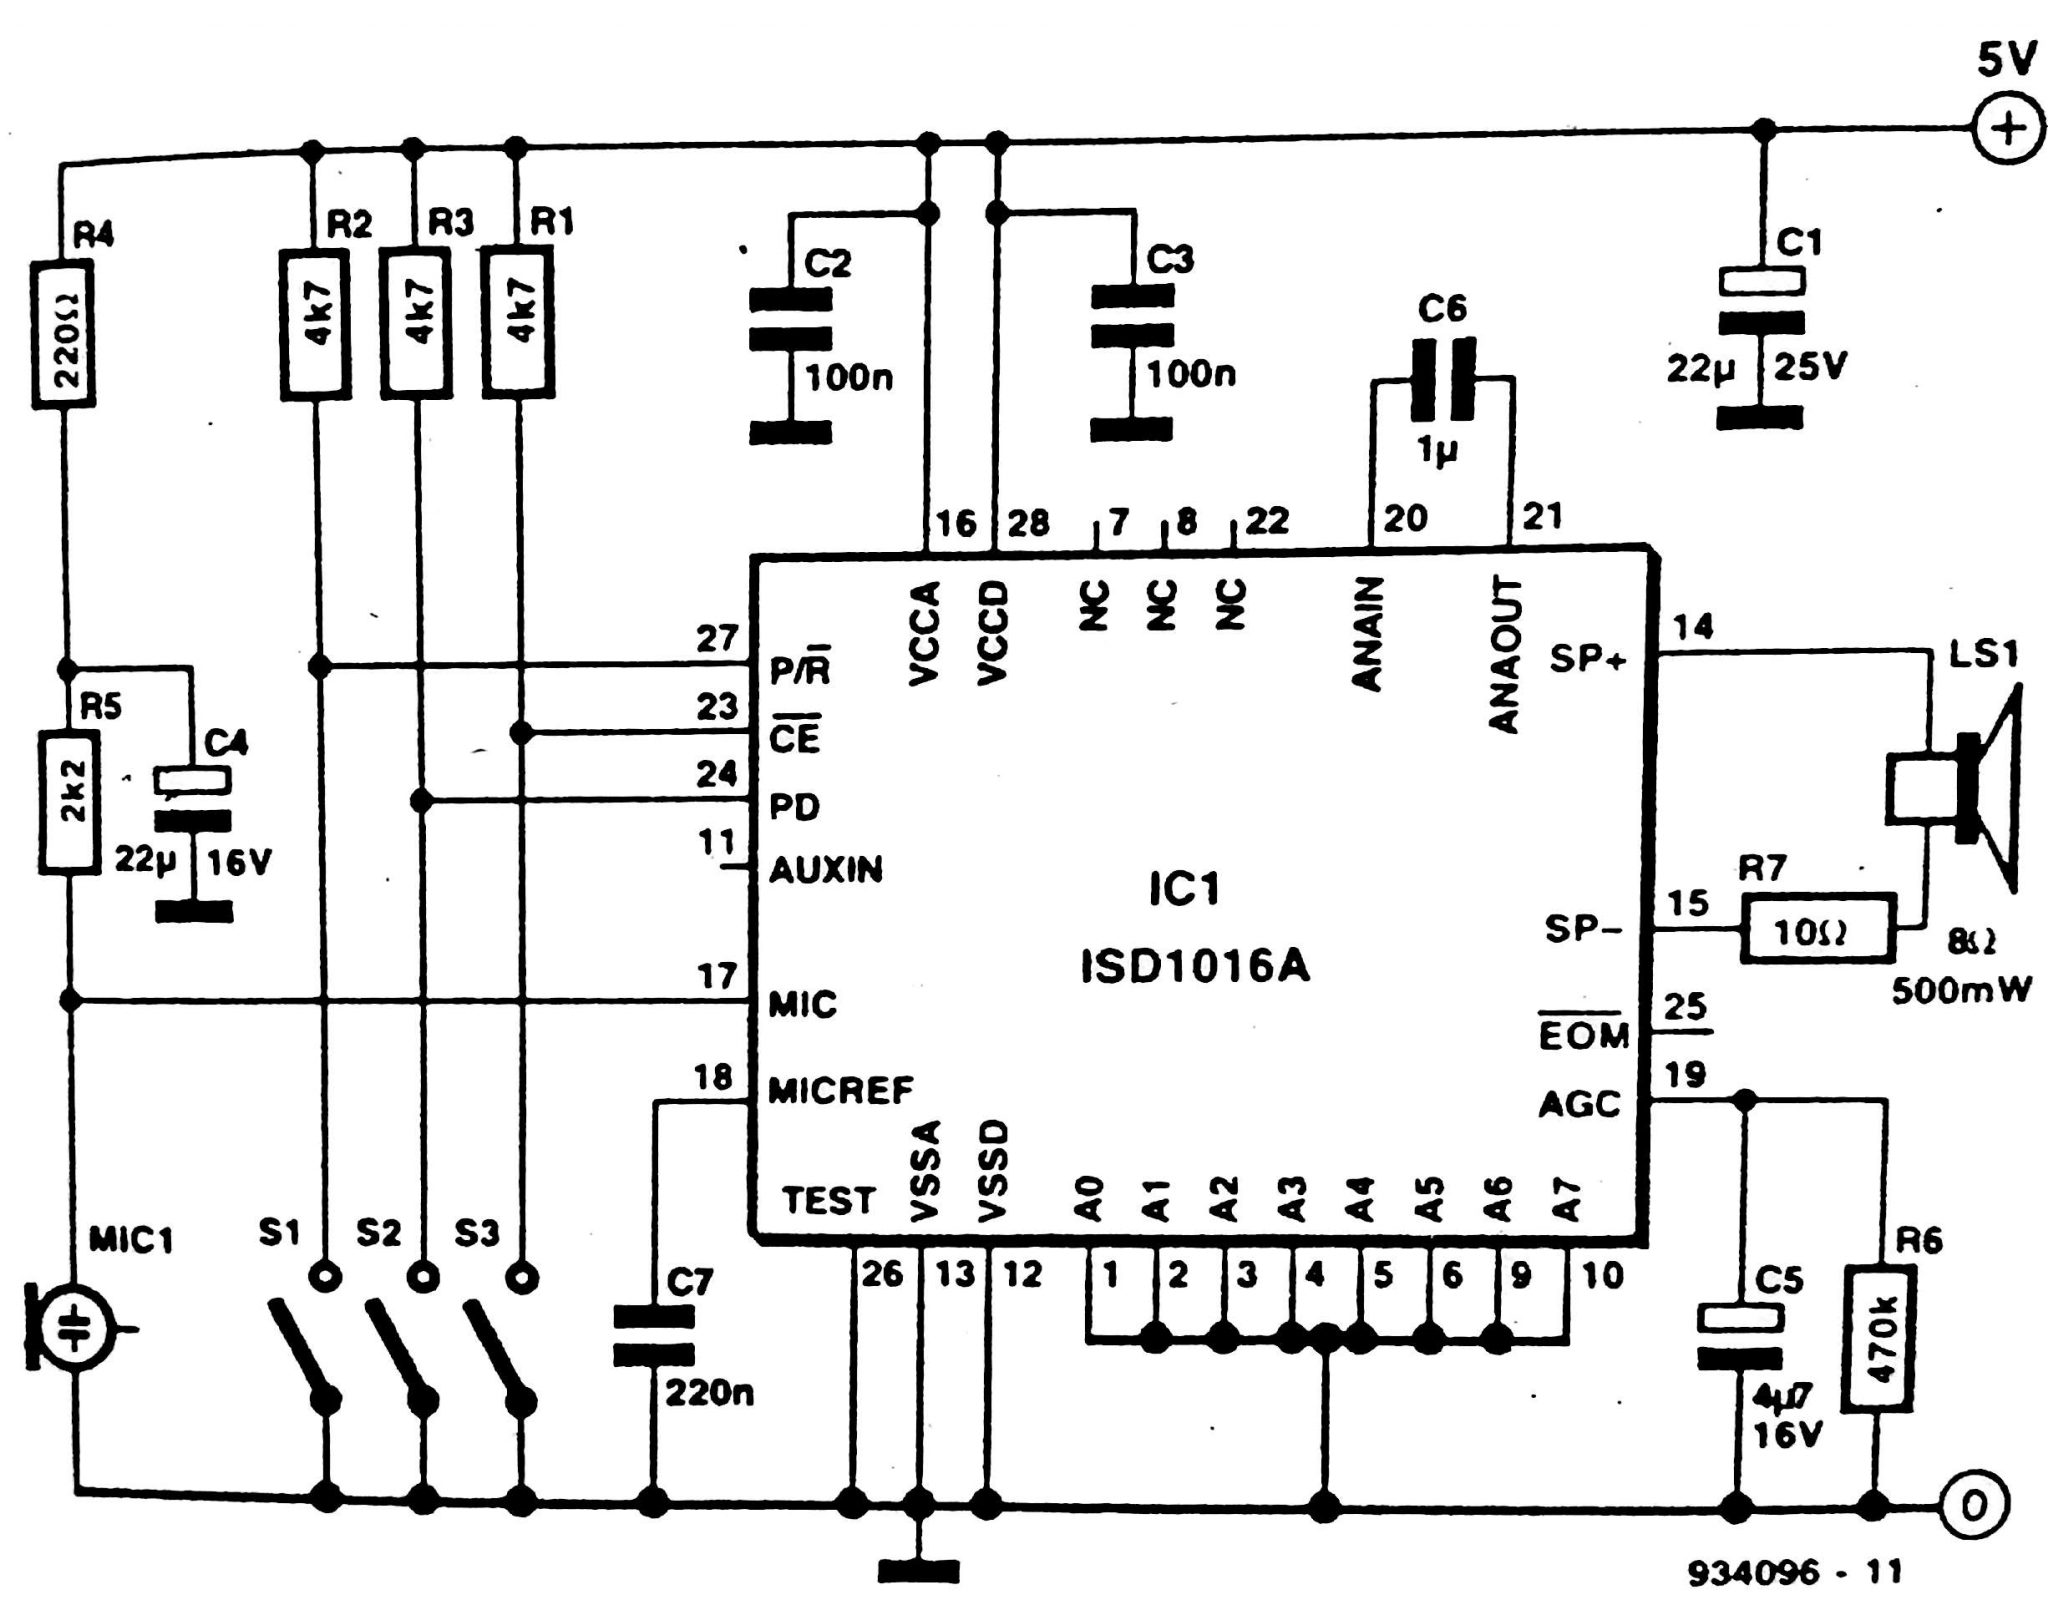 solid state audio recorder circuit diagram rh circuit diagramz com Samsung HDTV Schematics Diagram Simple Schematic Diagram